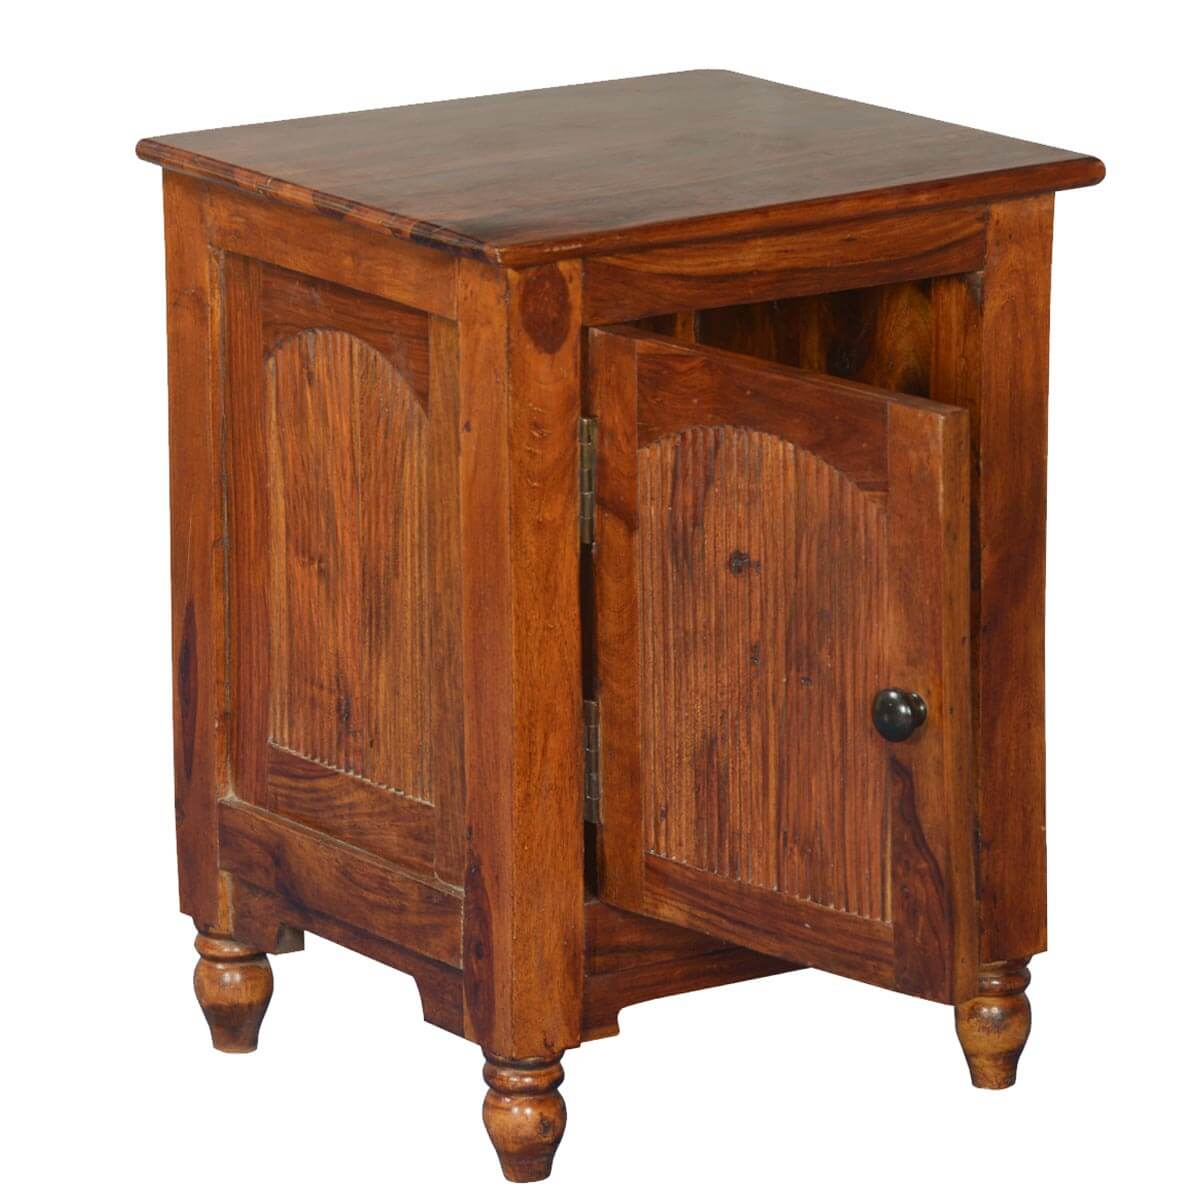 Rustic empire solid wood nightstand end table cabinet for Rustic nightstands